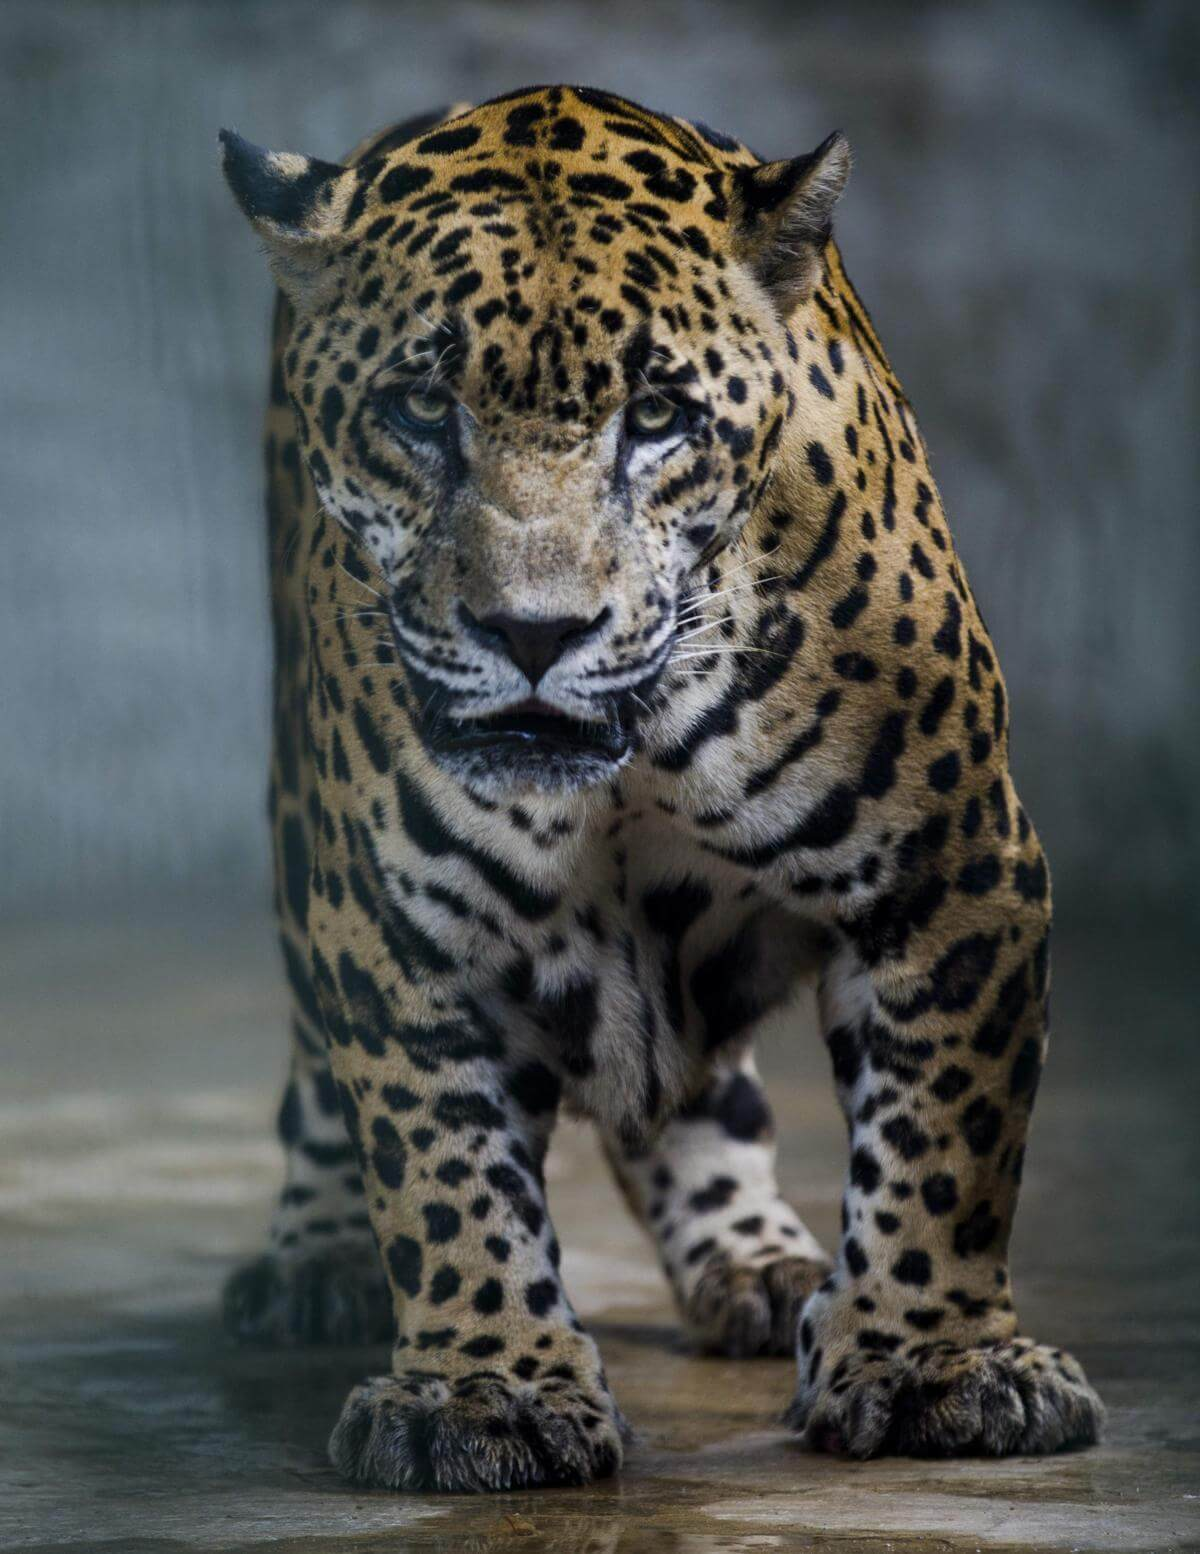 stunning animal images 23 (1)